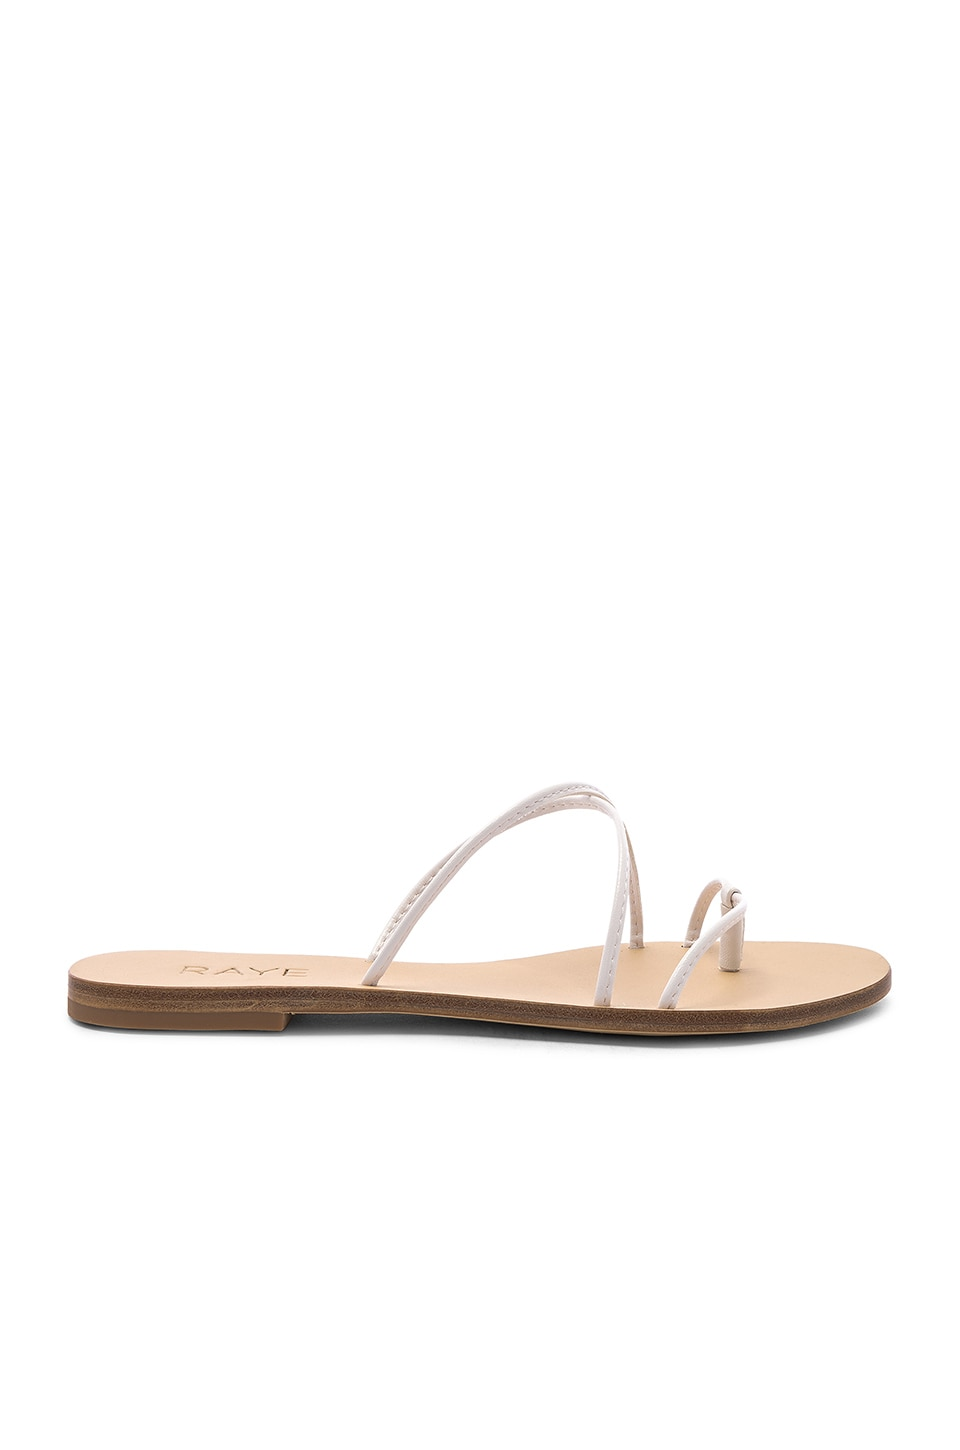 RAYE Myla Sandal in White